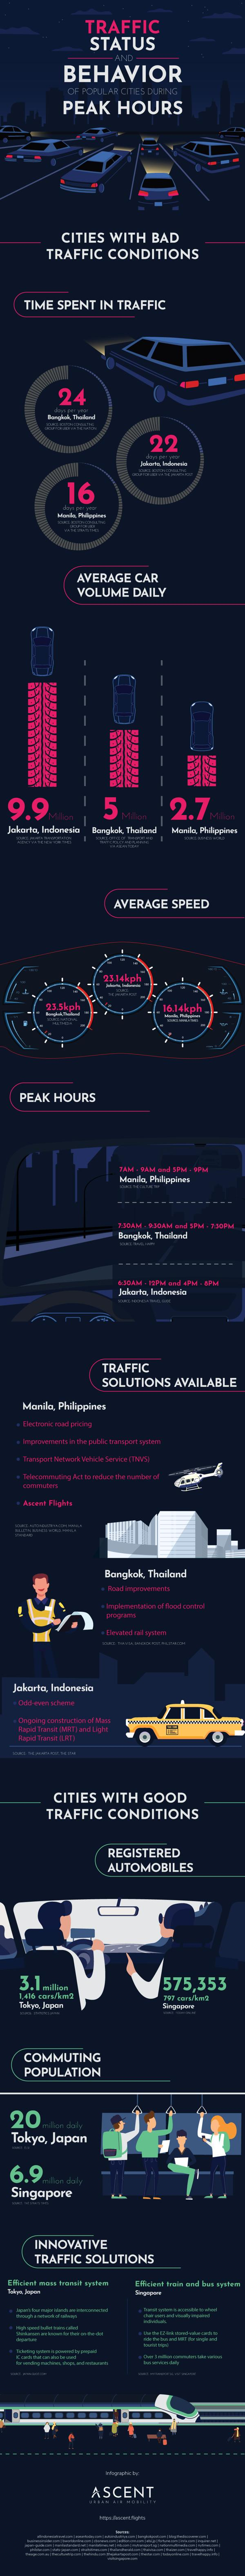 Traffic Status and Behavior of Popular Cities During Peak Hours 1